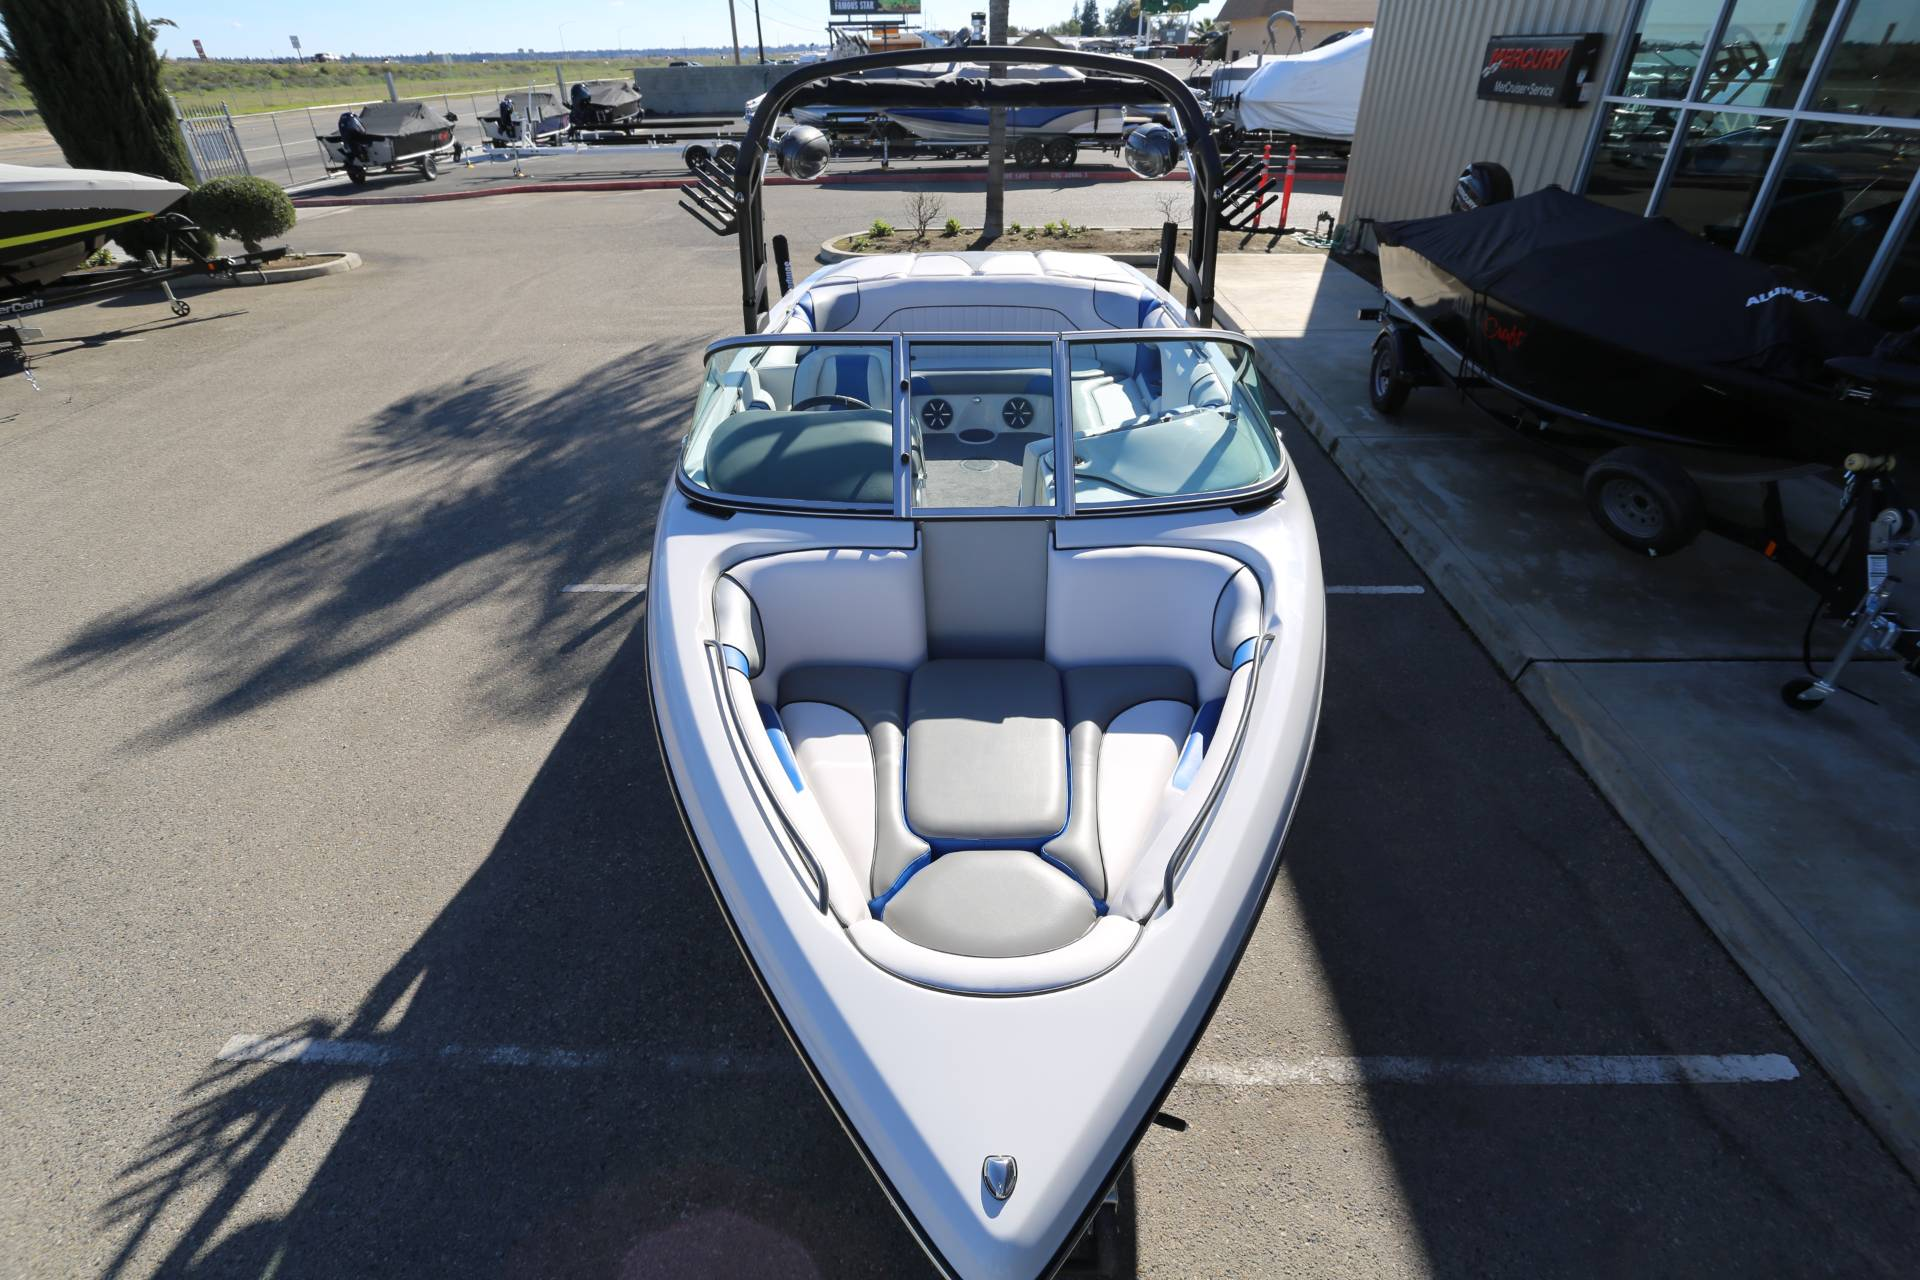 2021 Sanger Boats V215 SX in Madera, California - Photo 21